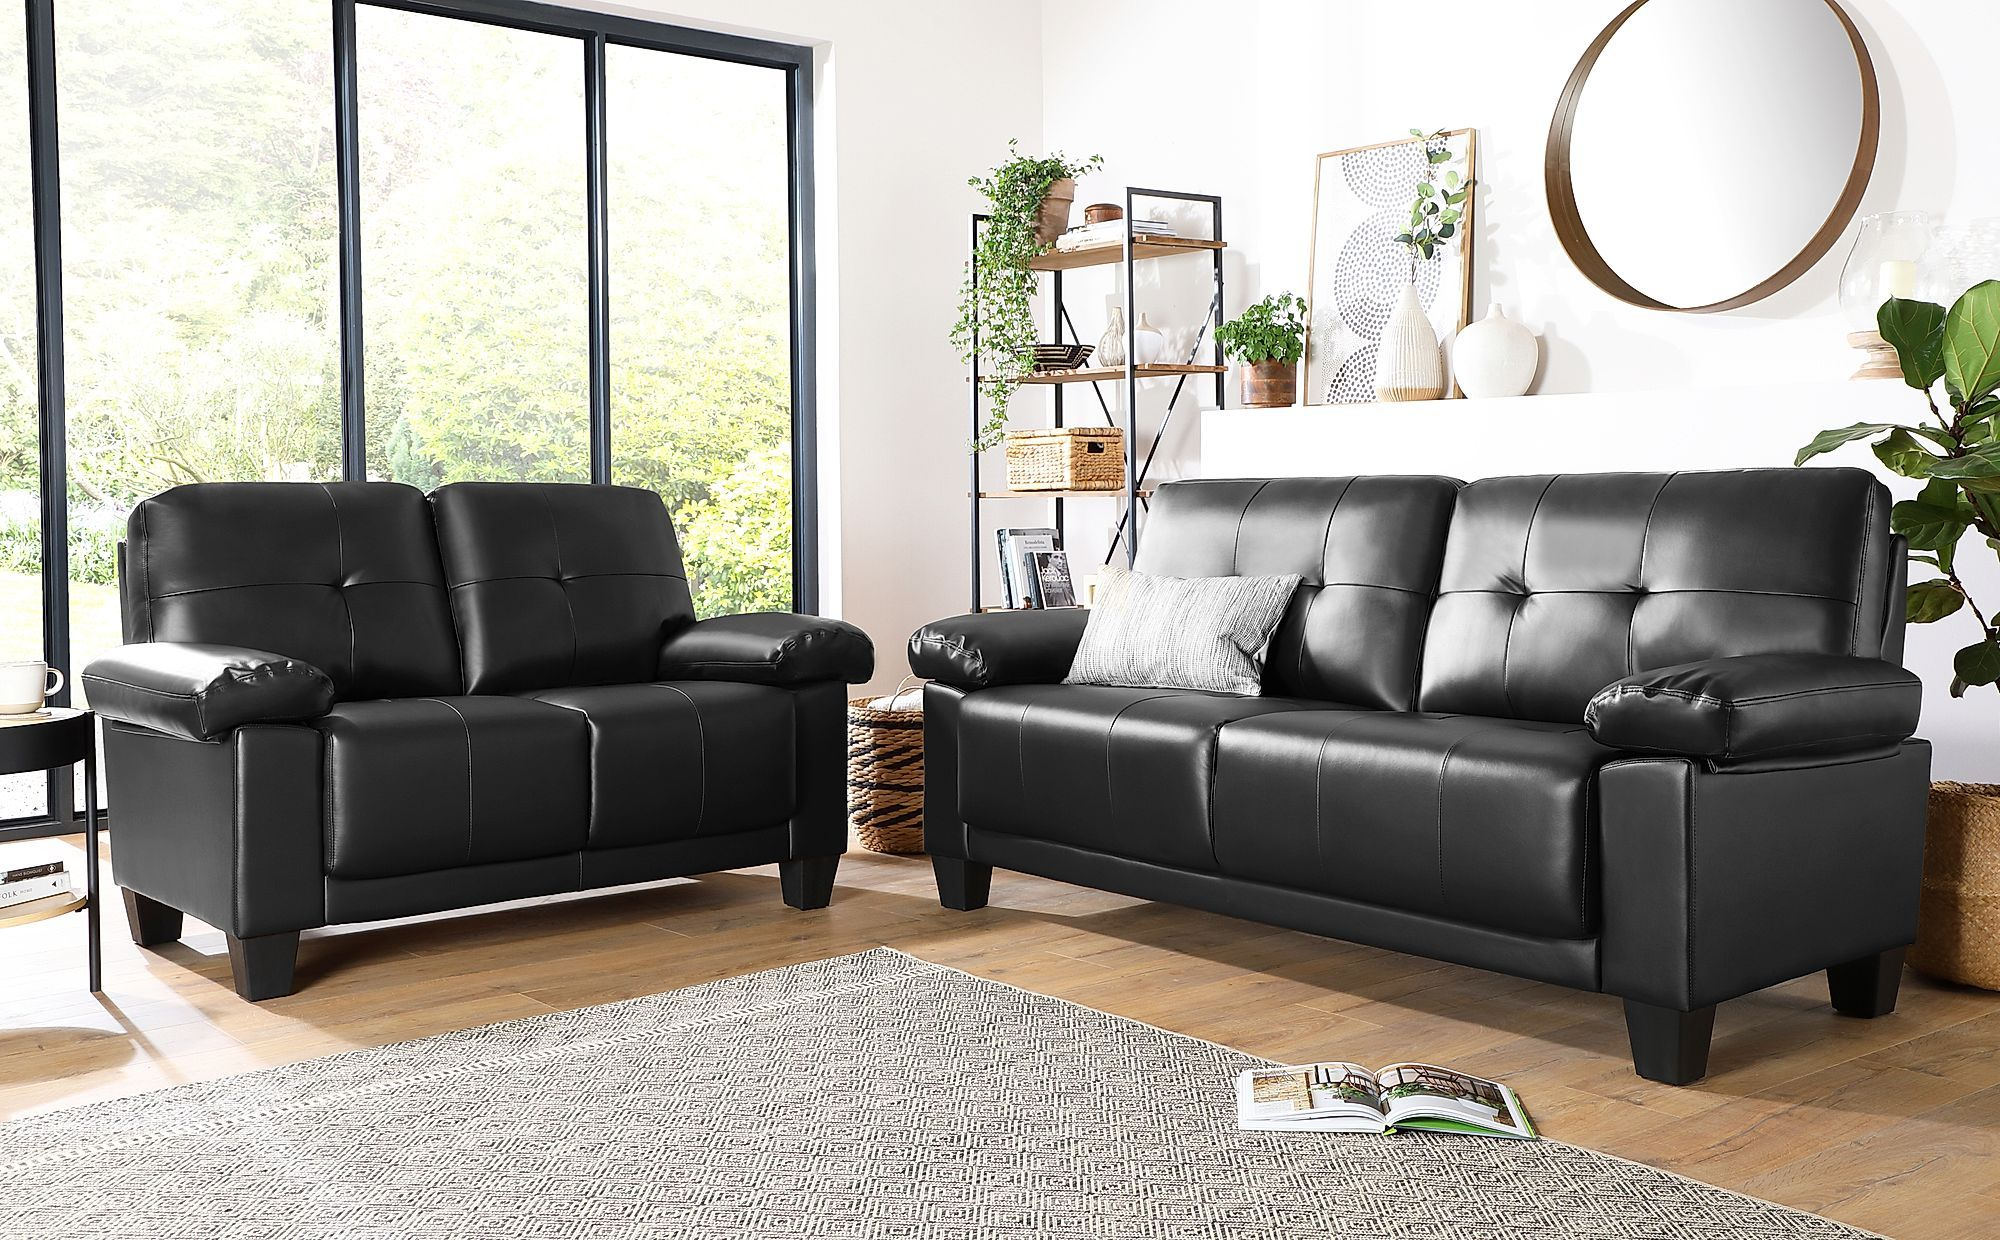 Linton Small Black Leather 3 2 Seater Sofa Set Sofa Set Bedroom Furniture Sets 2 Seater Sofa